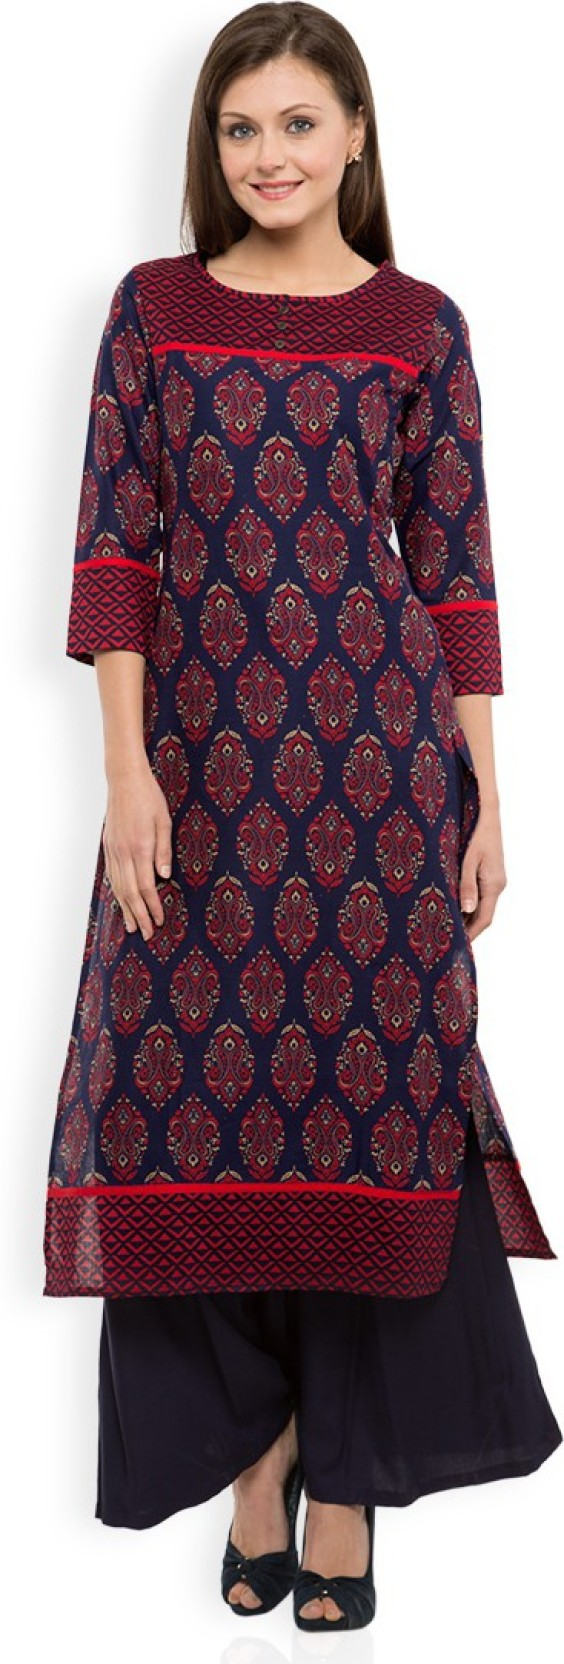 a7bc5b46c78 Vishudh Women s Printed Straight Kurta - Buy NAVY BLUE